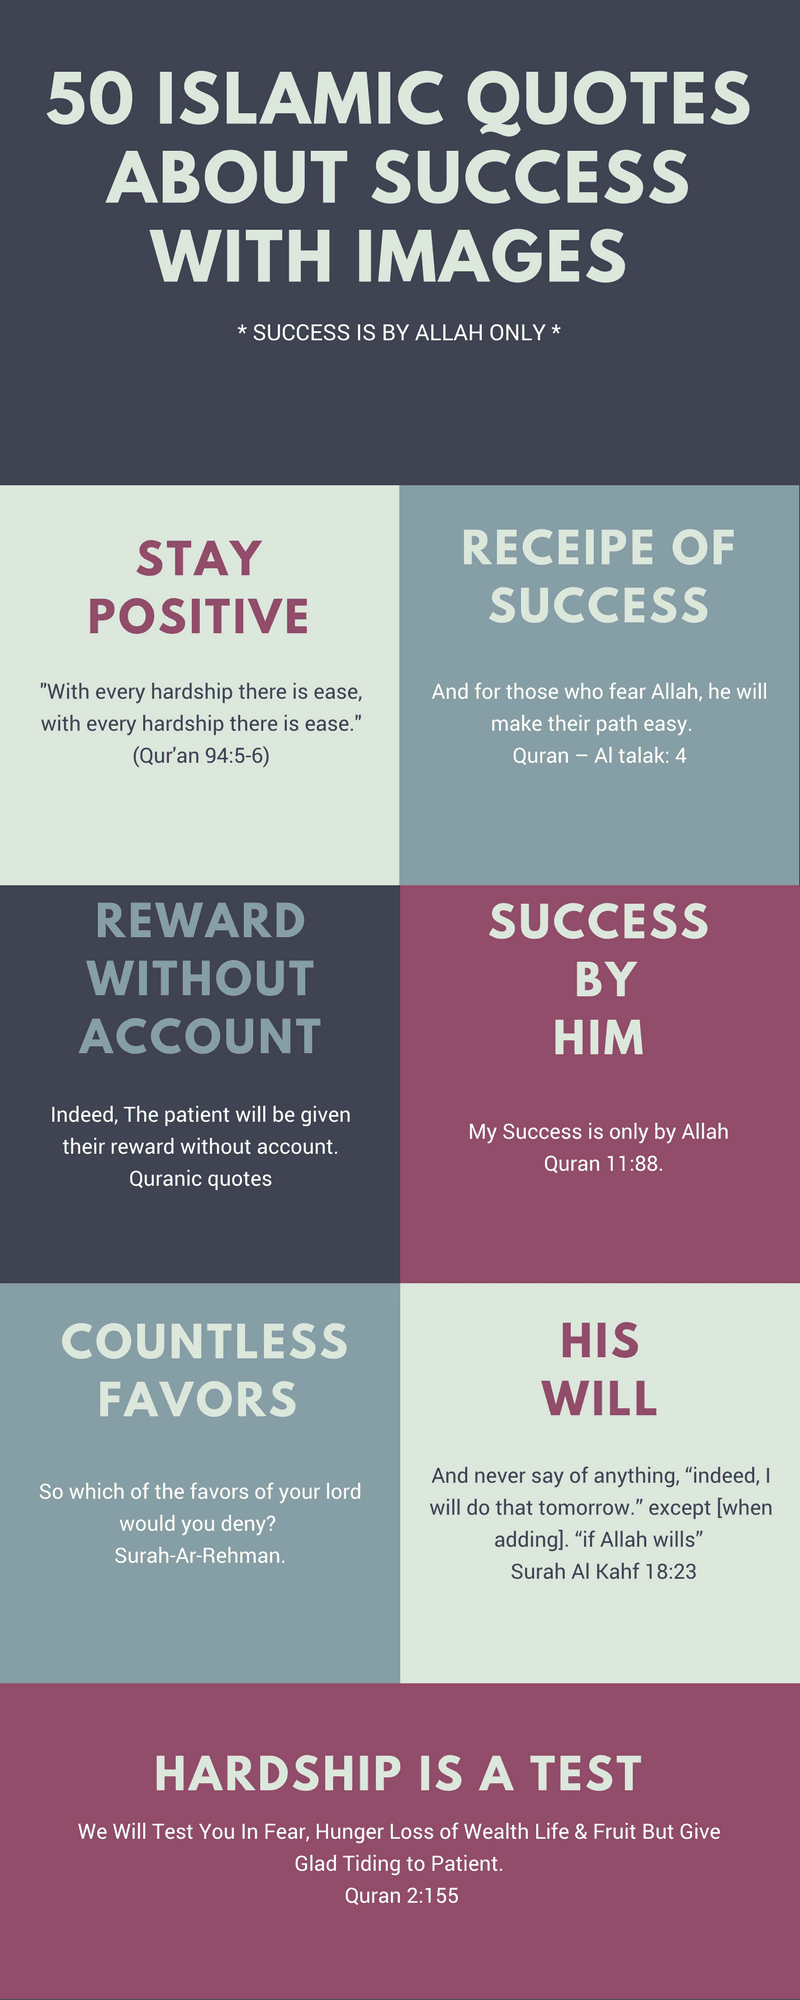 Islamic Quotes About Success